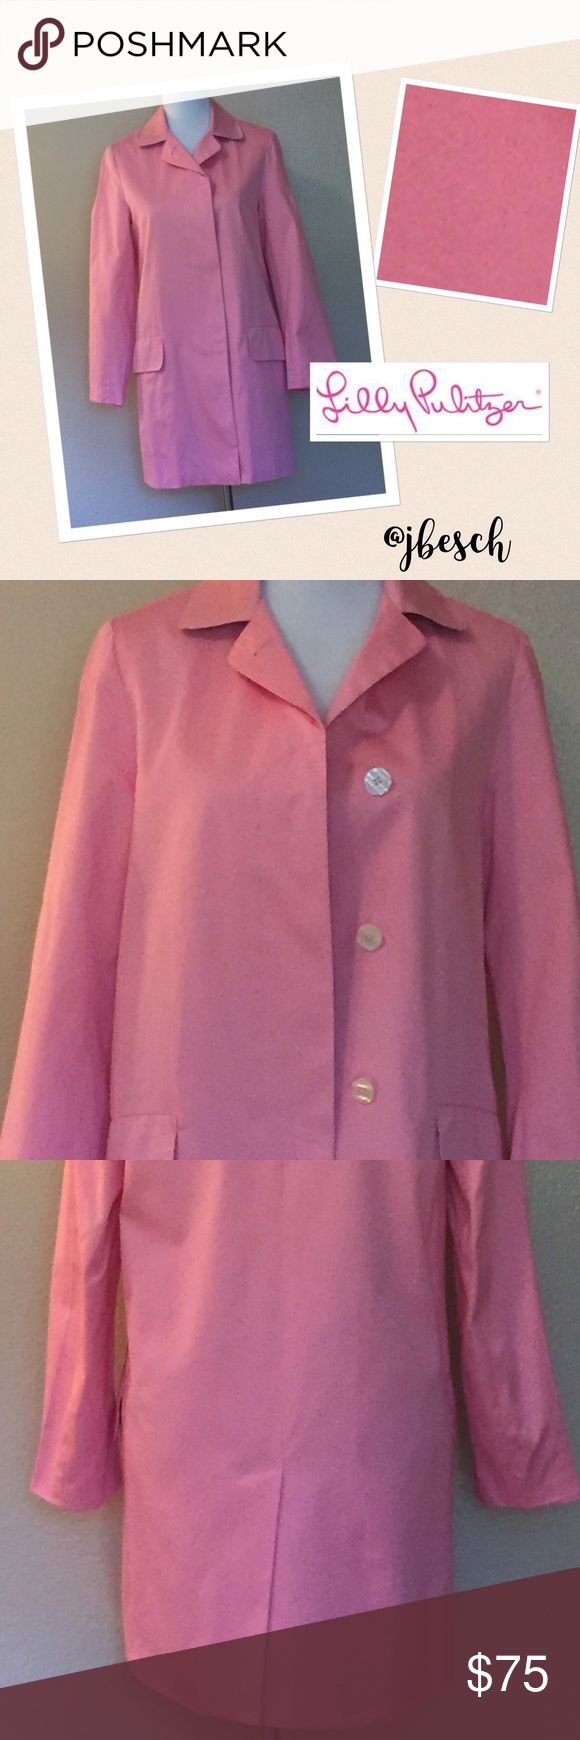 Lilly Pulitzer All Weather Coat This adorable pink Lilly Pulitzer is the perfect coat! It features hidden buttons, a kick-pleat and Aruba patchwork lining on the cuffs and collar! The shell is 100% cotton and the lining is 100% acetate, This Lilly is in perfect condition!            Johnna Lilly Pulitzer Jackets & Coats